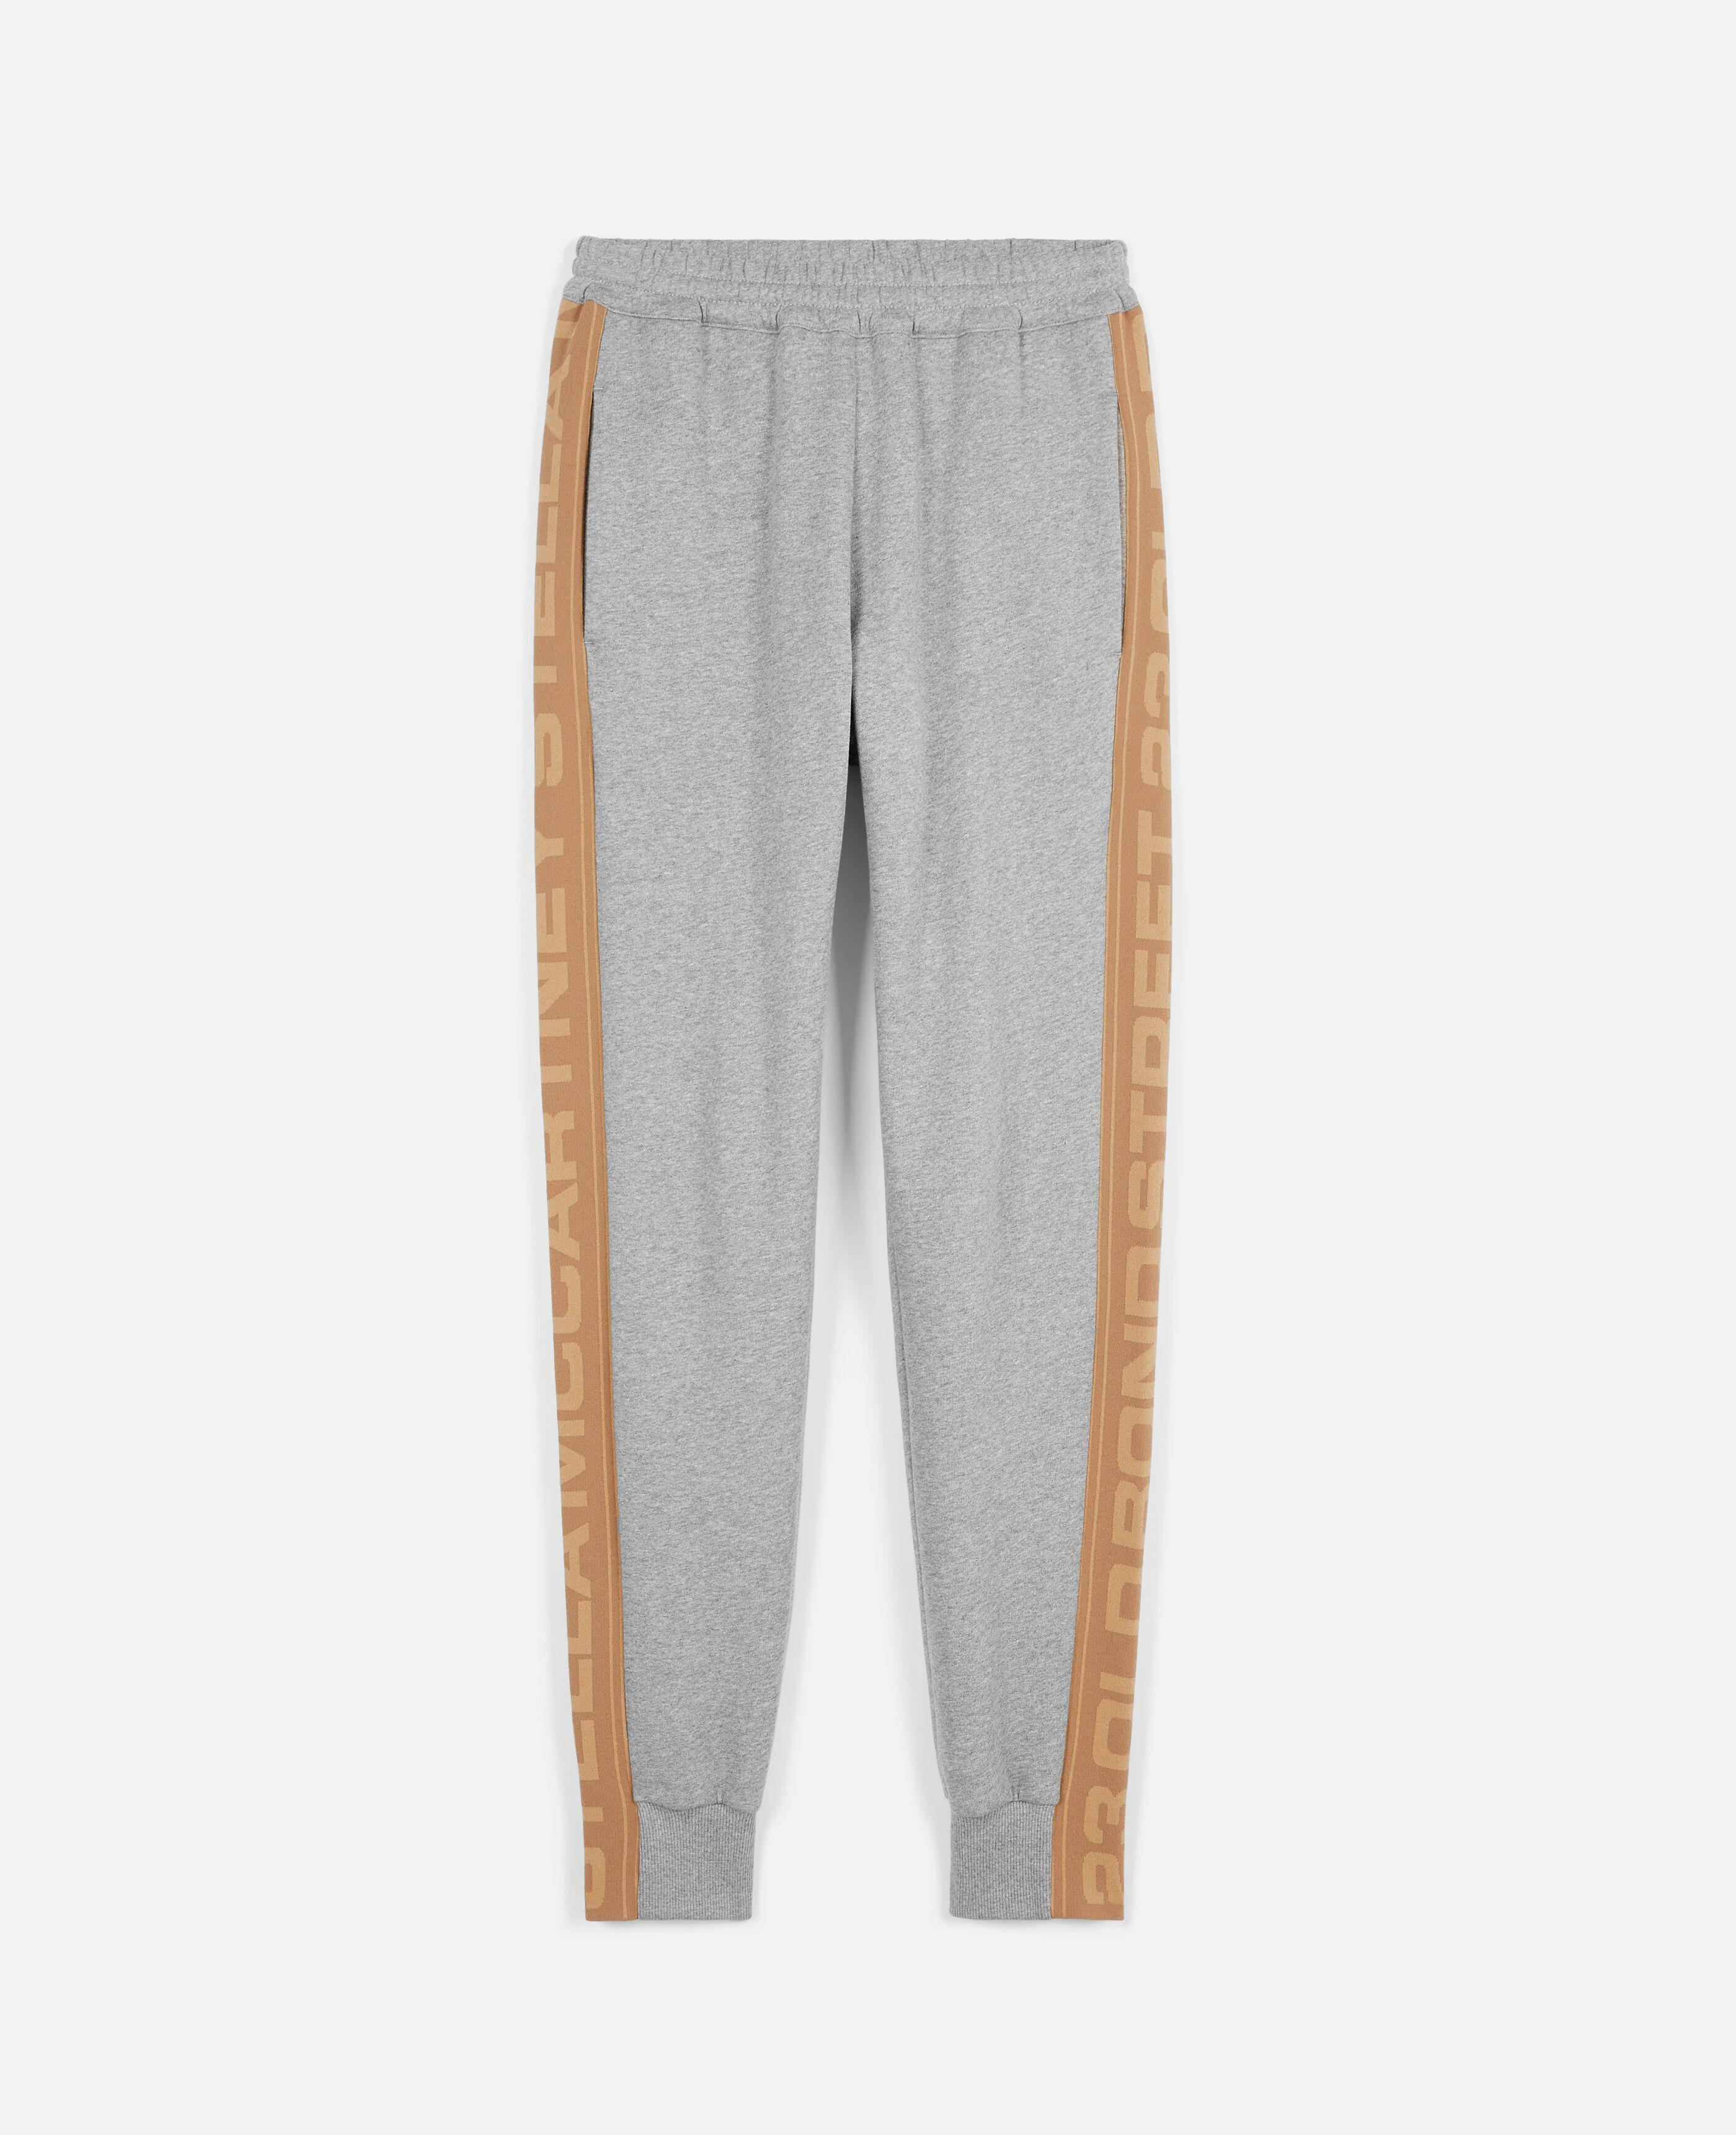 23 OBS Knitted Pants 3